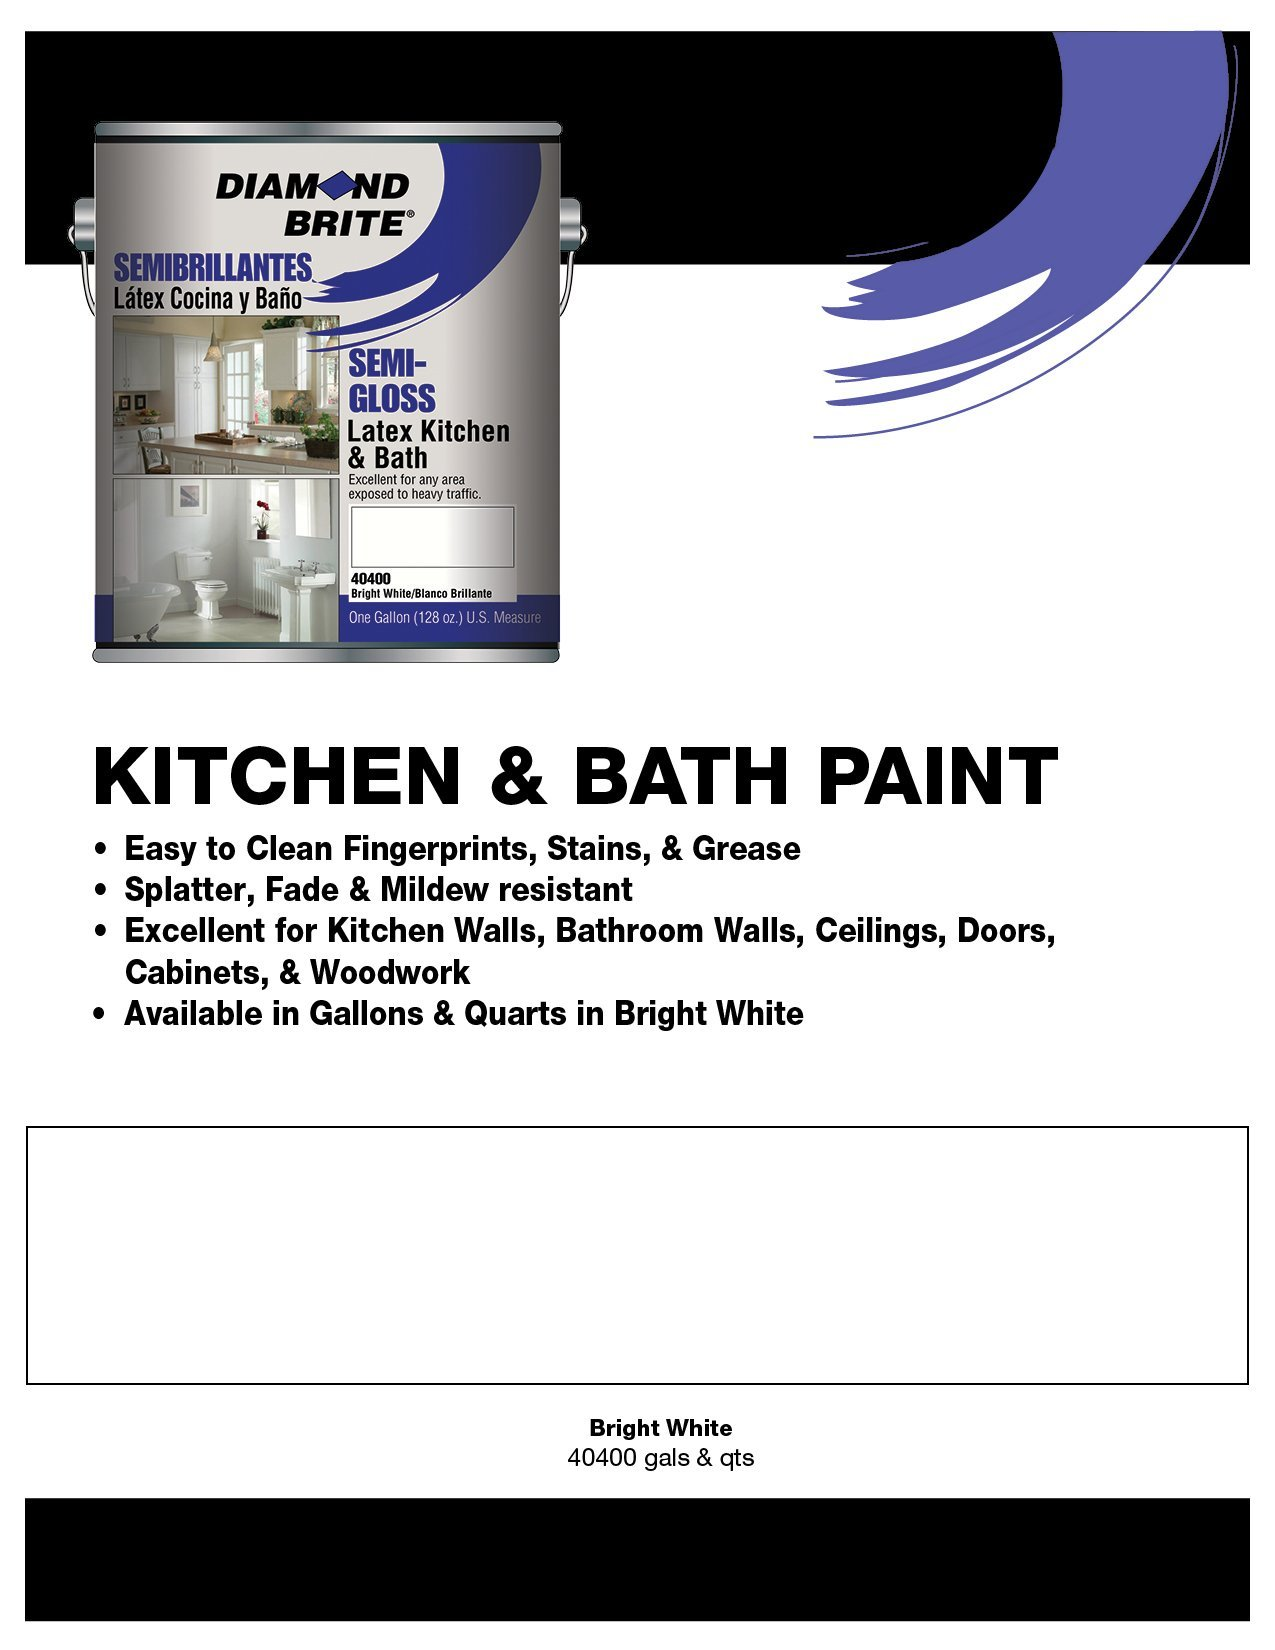 Diamond Brite Paint 40400 1-Gallon Kichen and Bath with Mildew Protection Semi Gloss Latex Paint White by Diamond Brite Paint (Image #2)